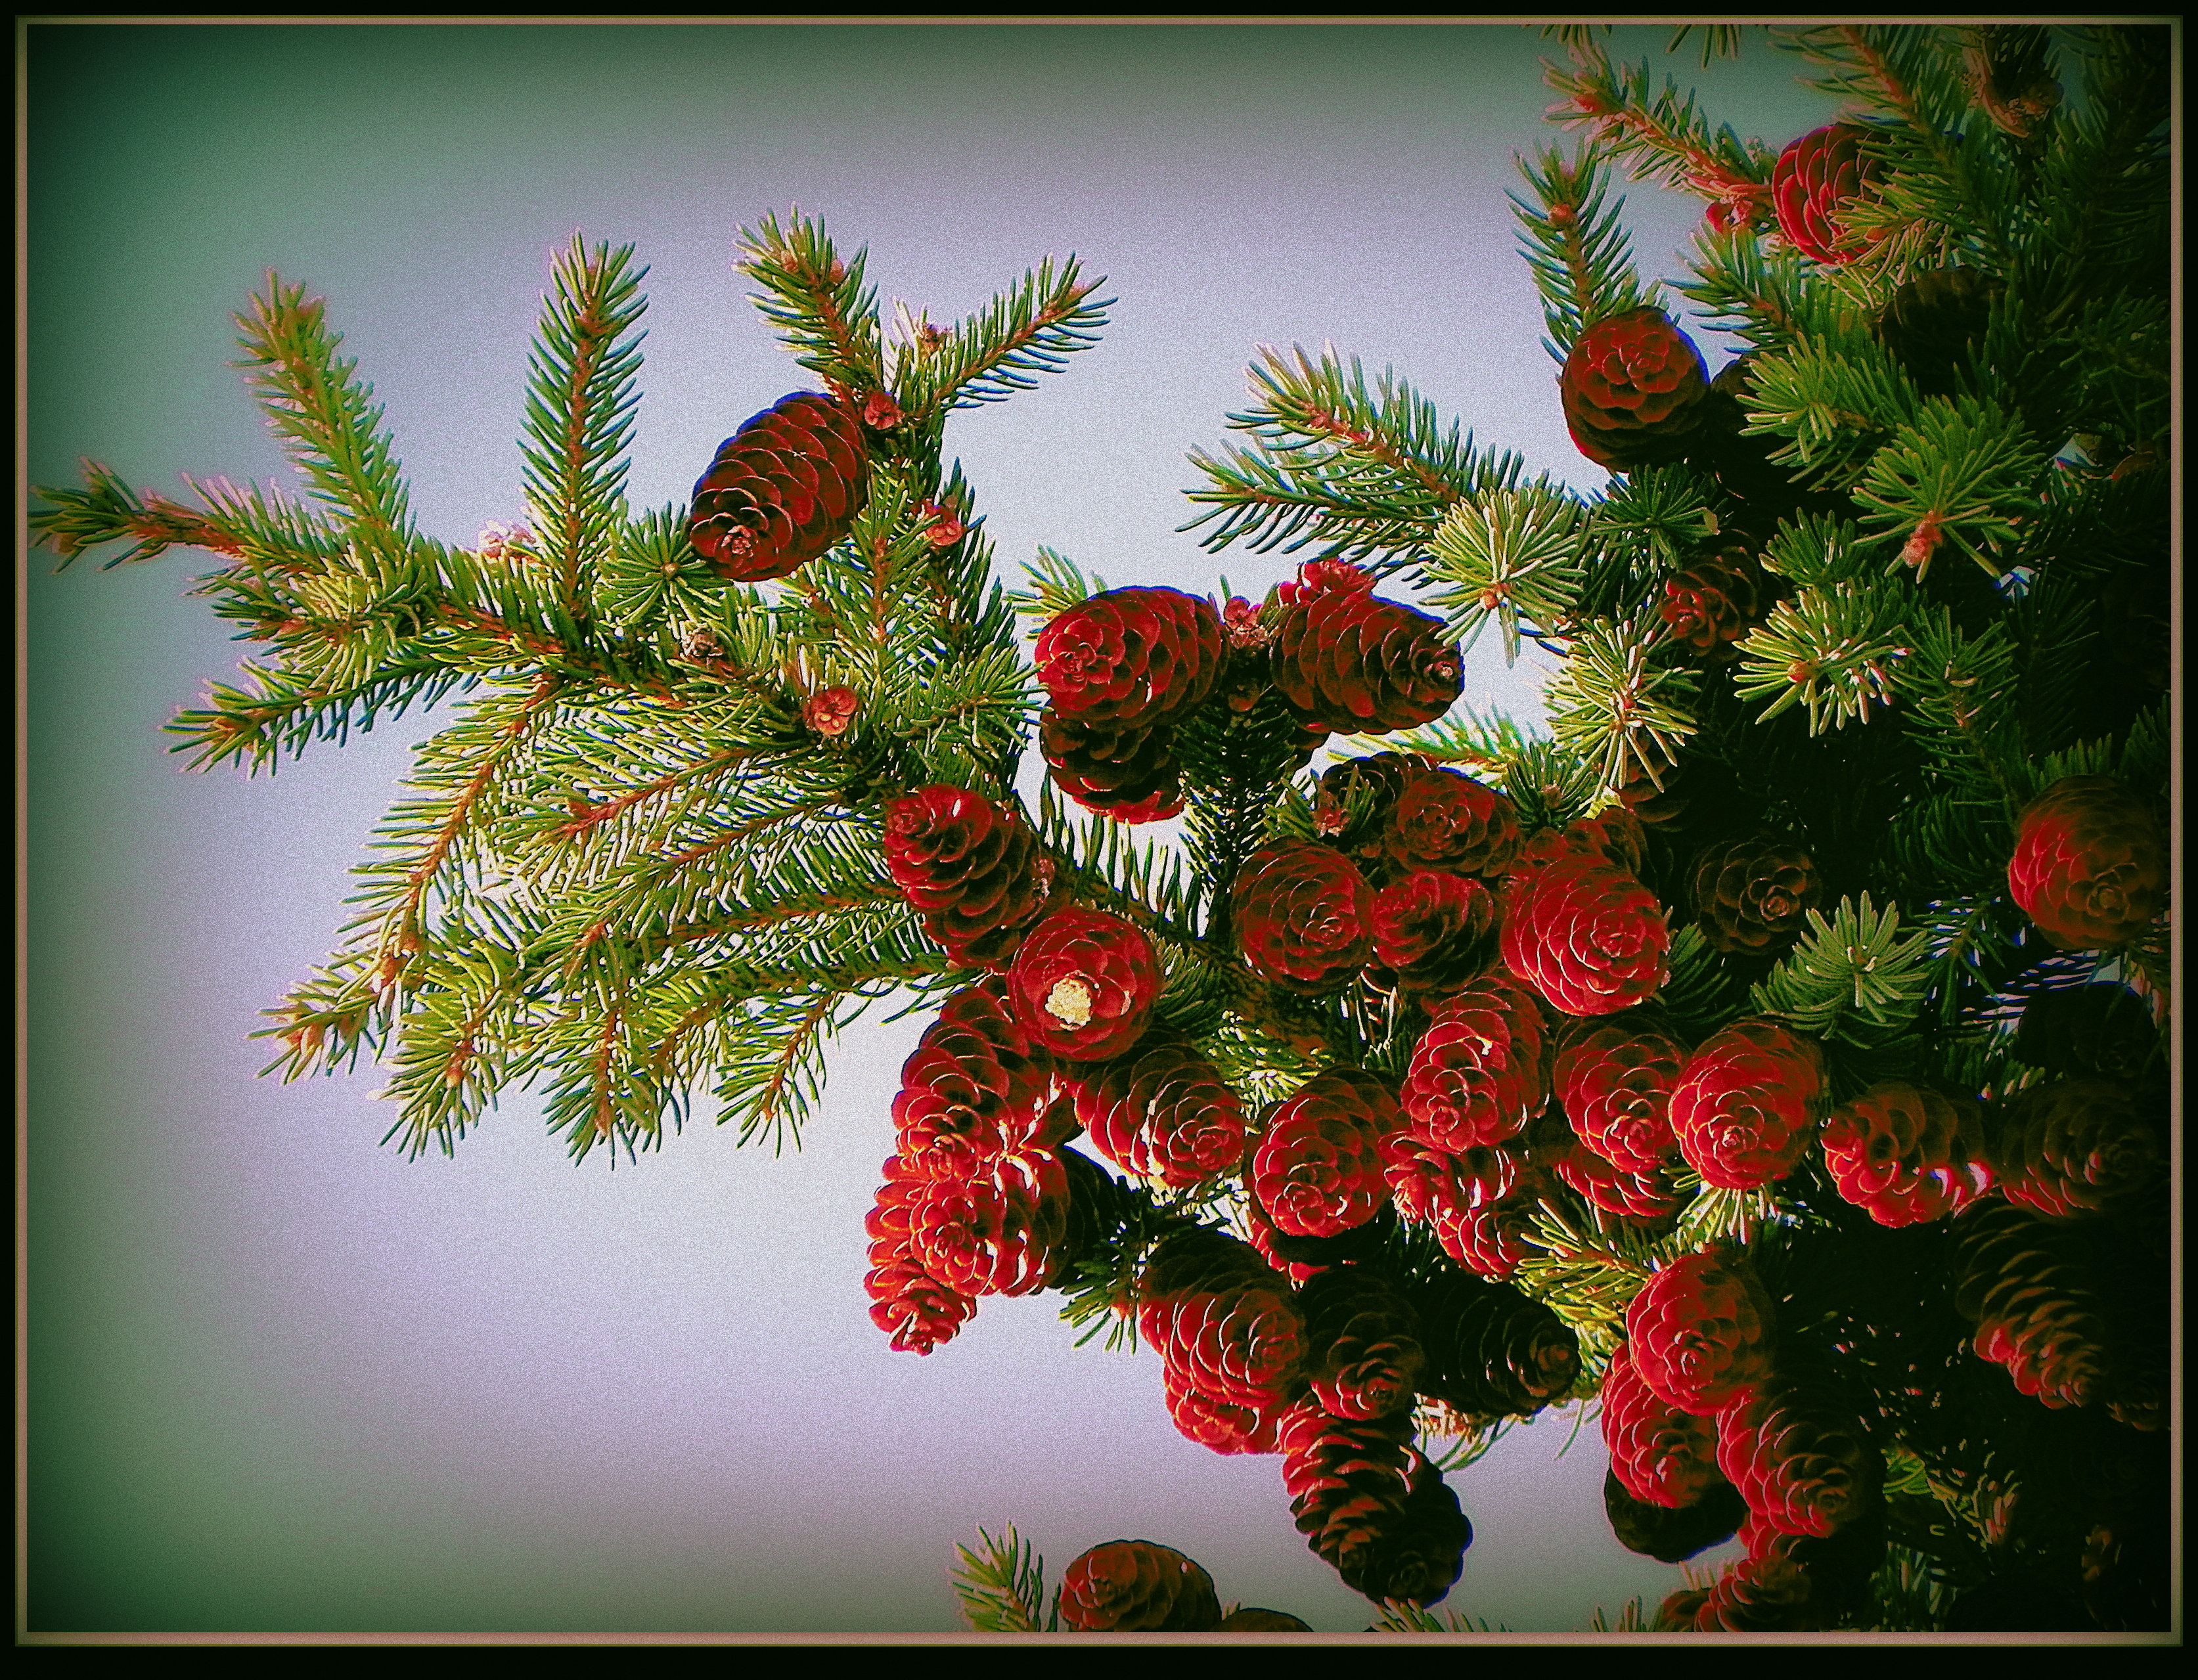 Spruce Cones by surrealistic-gloom